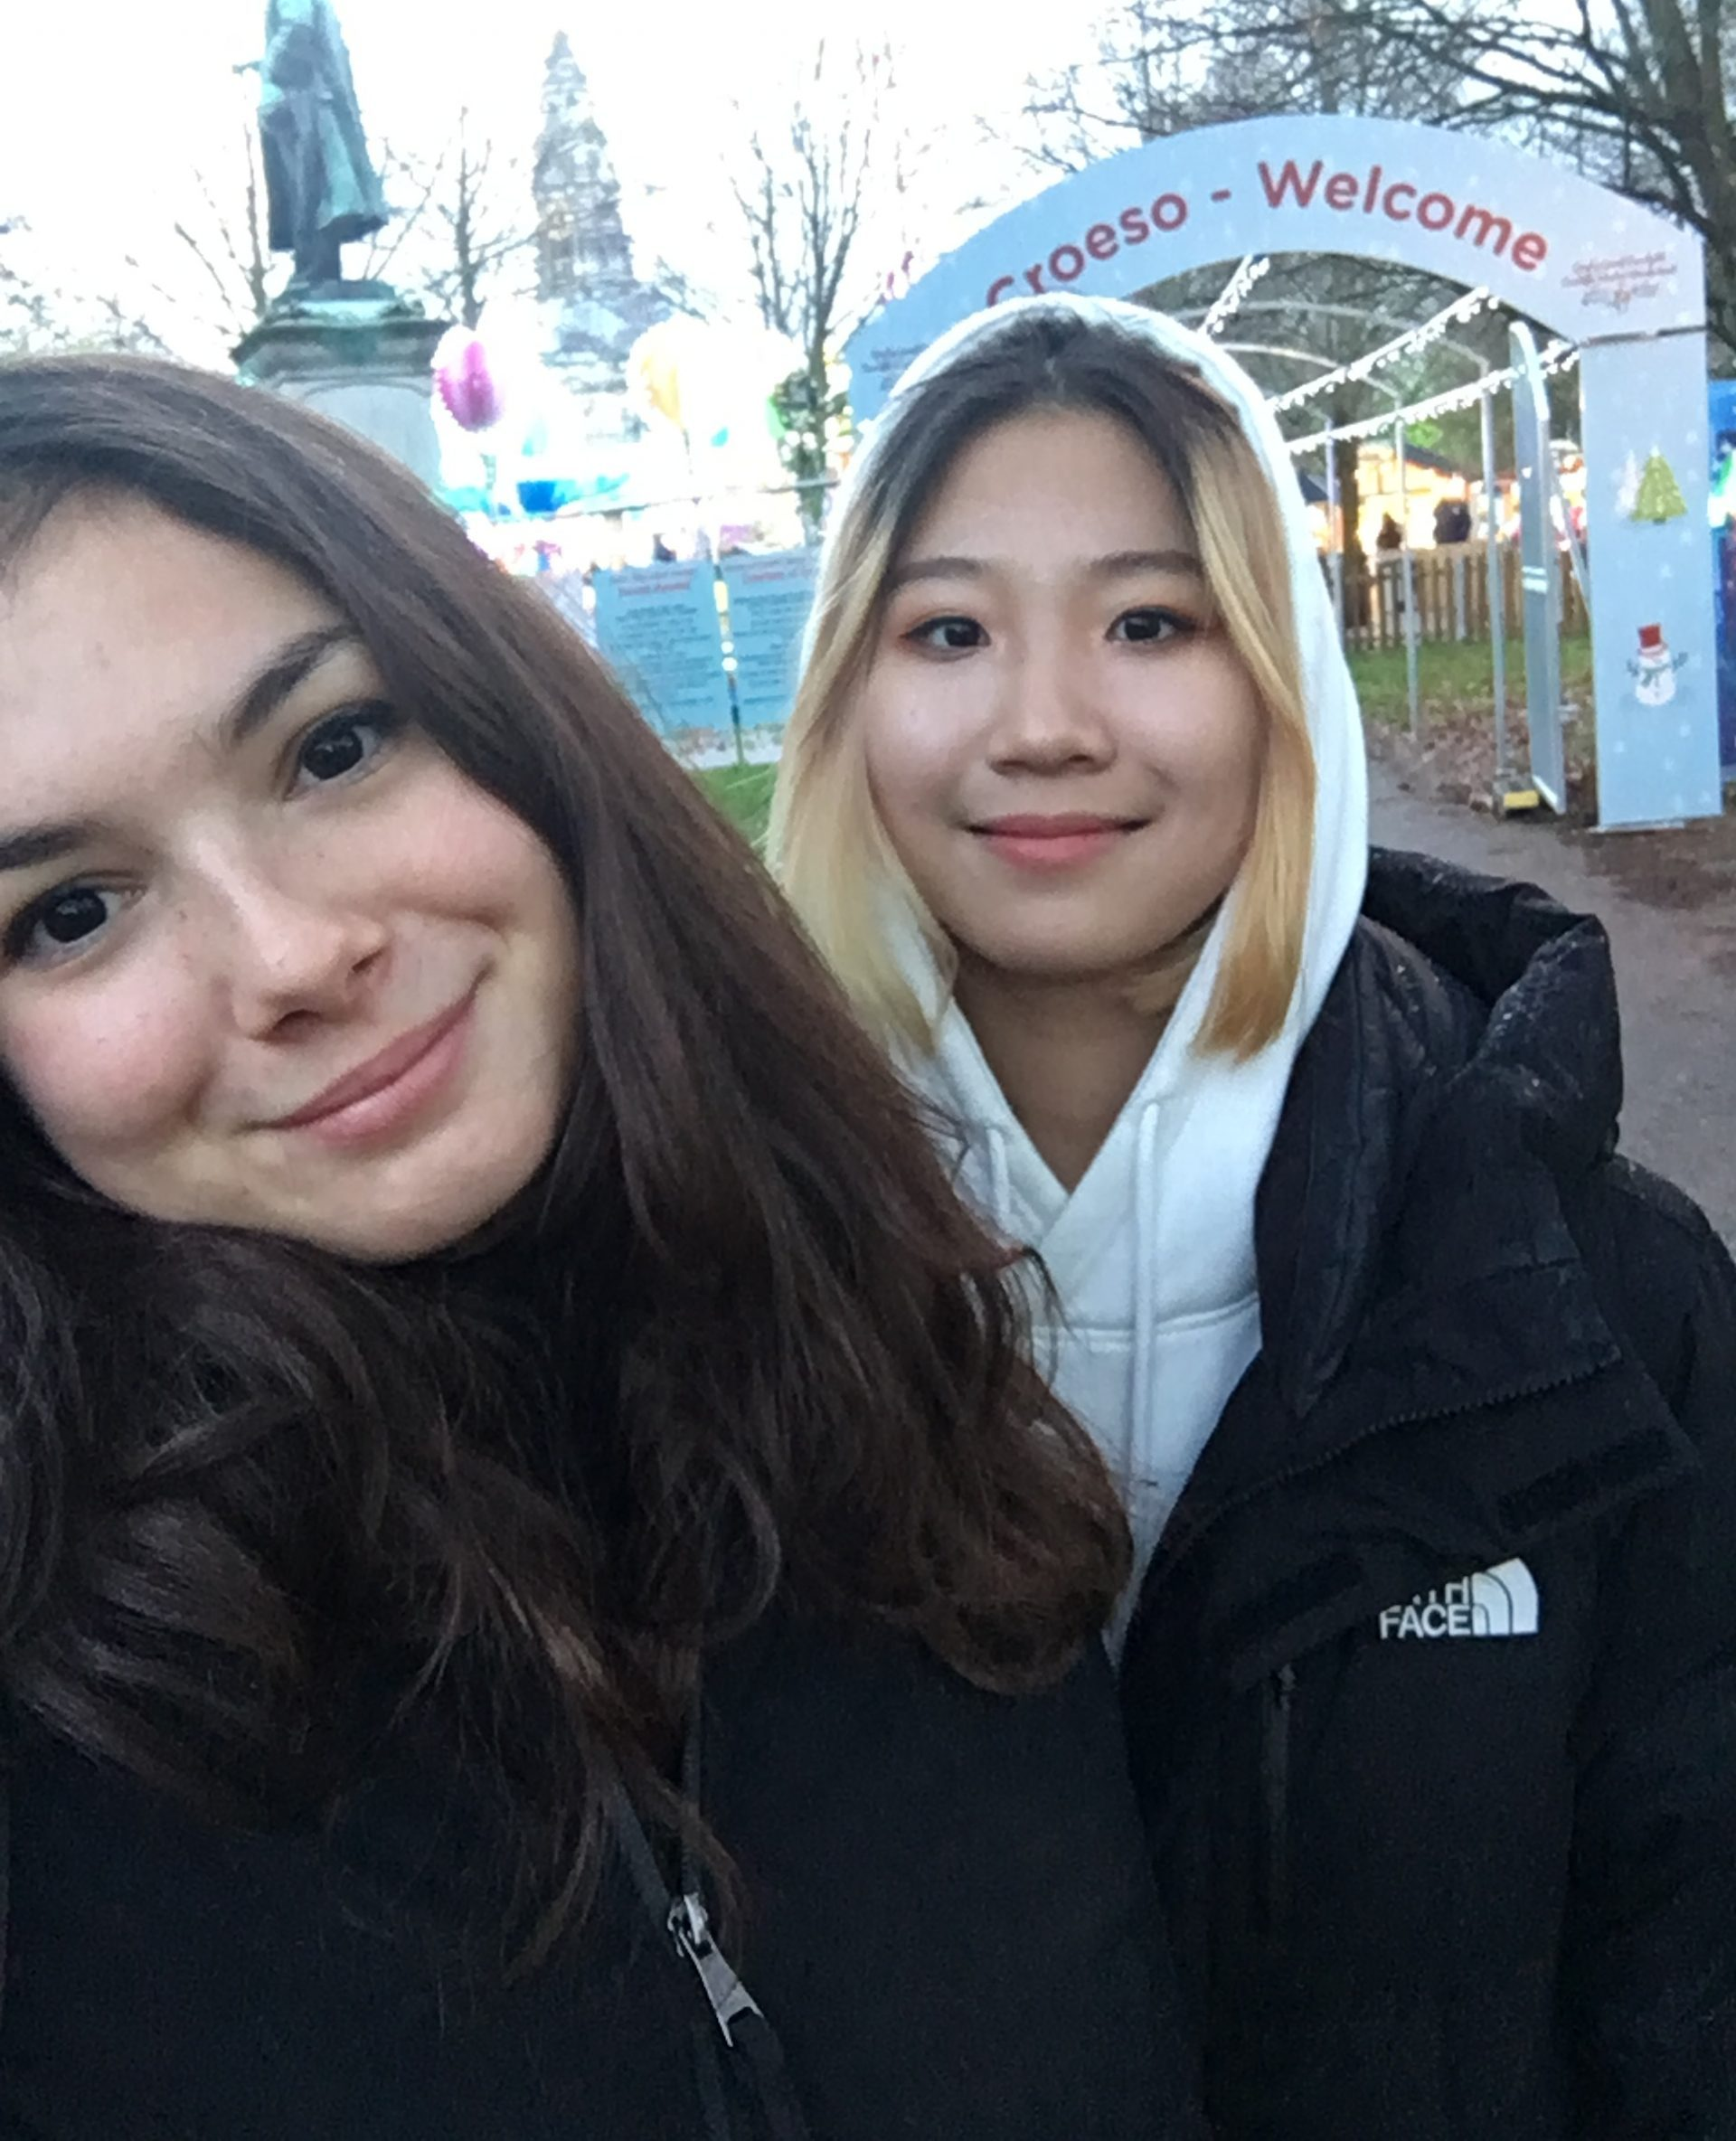 Laura and her friend at Winter Wonderland